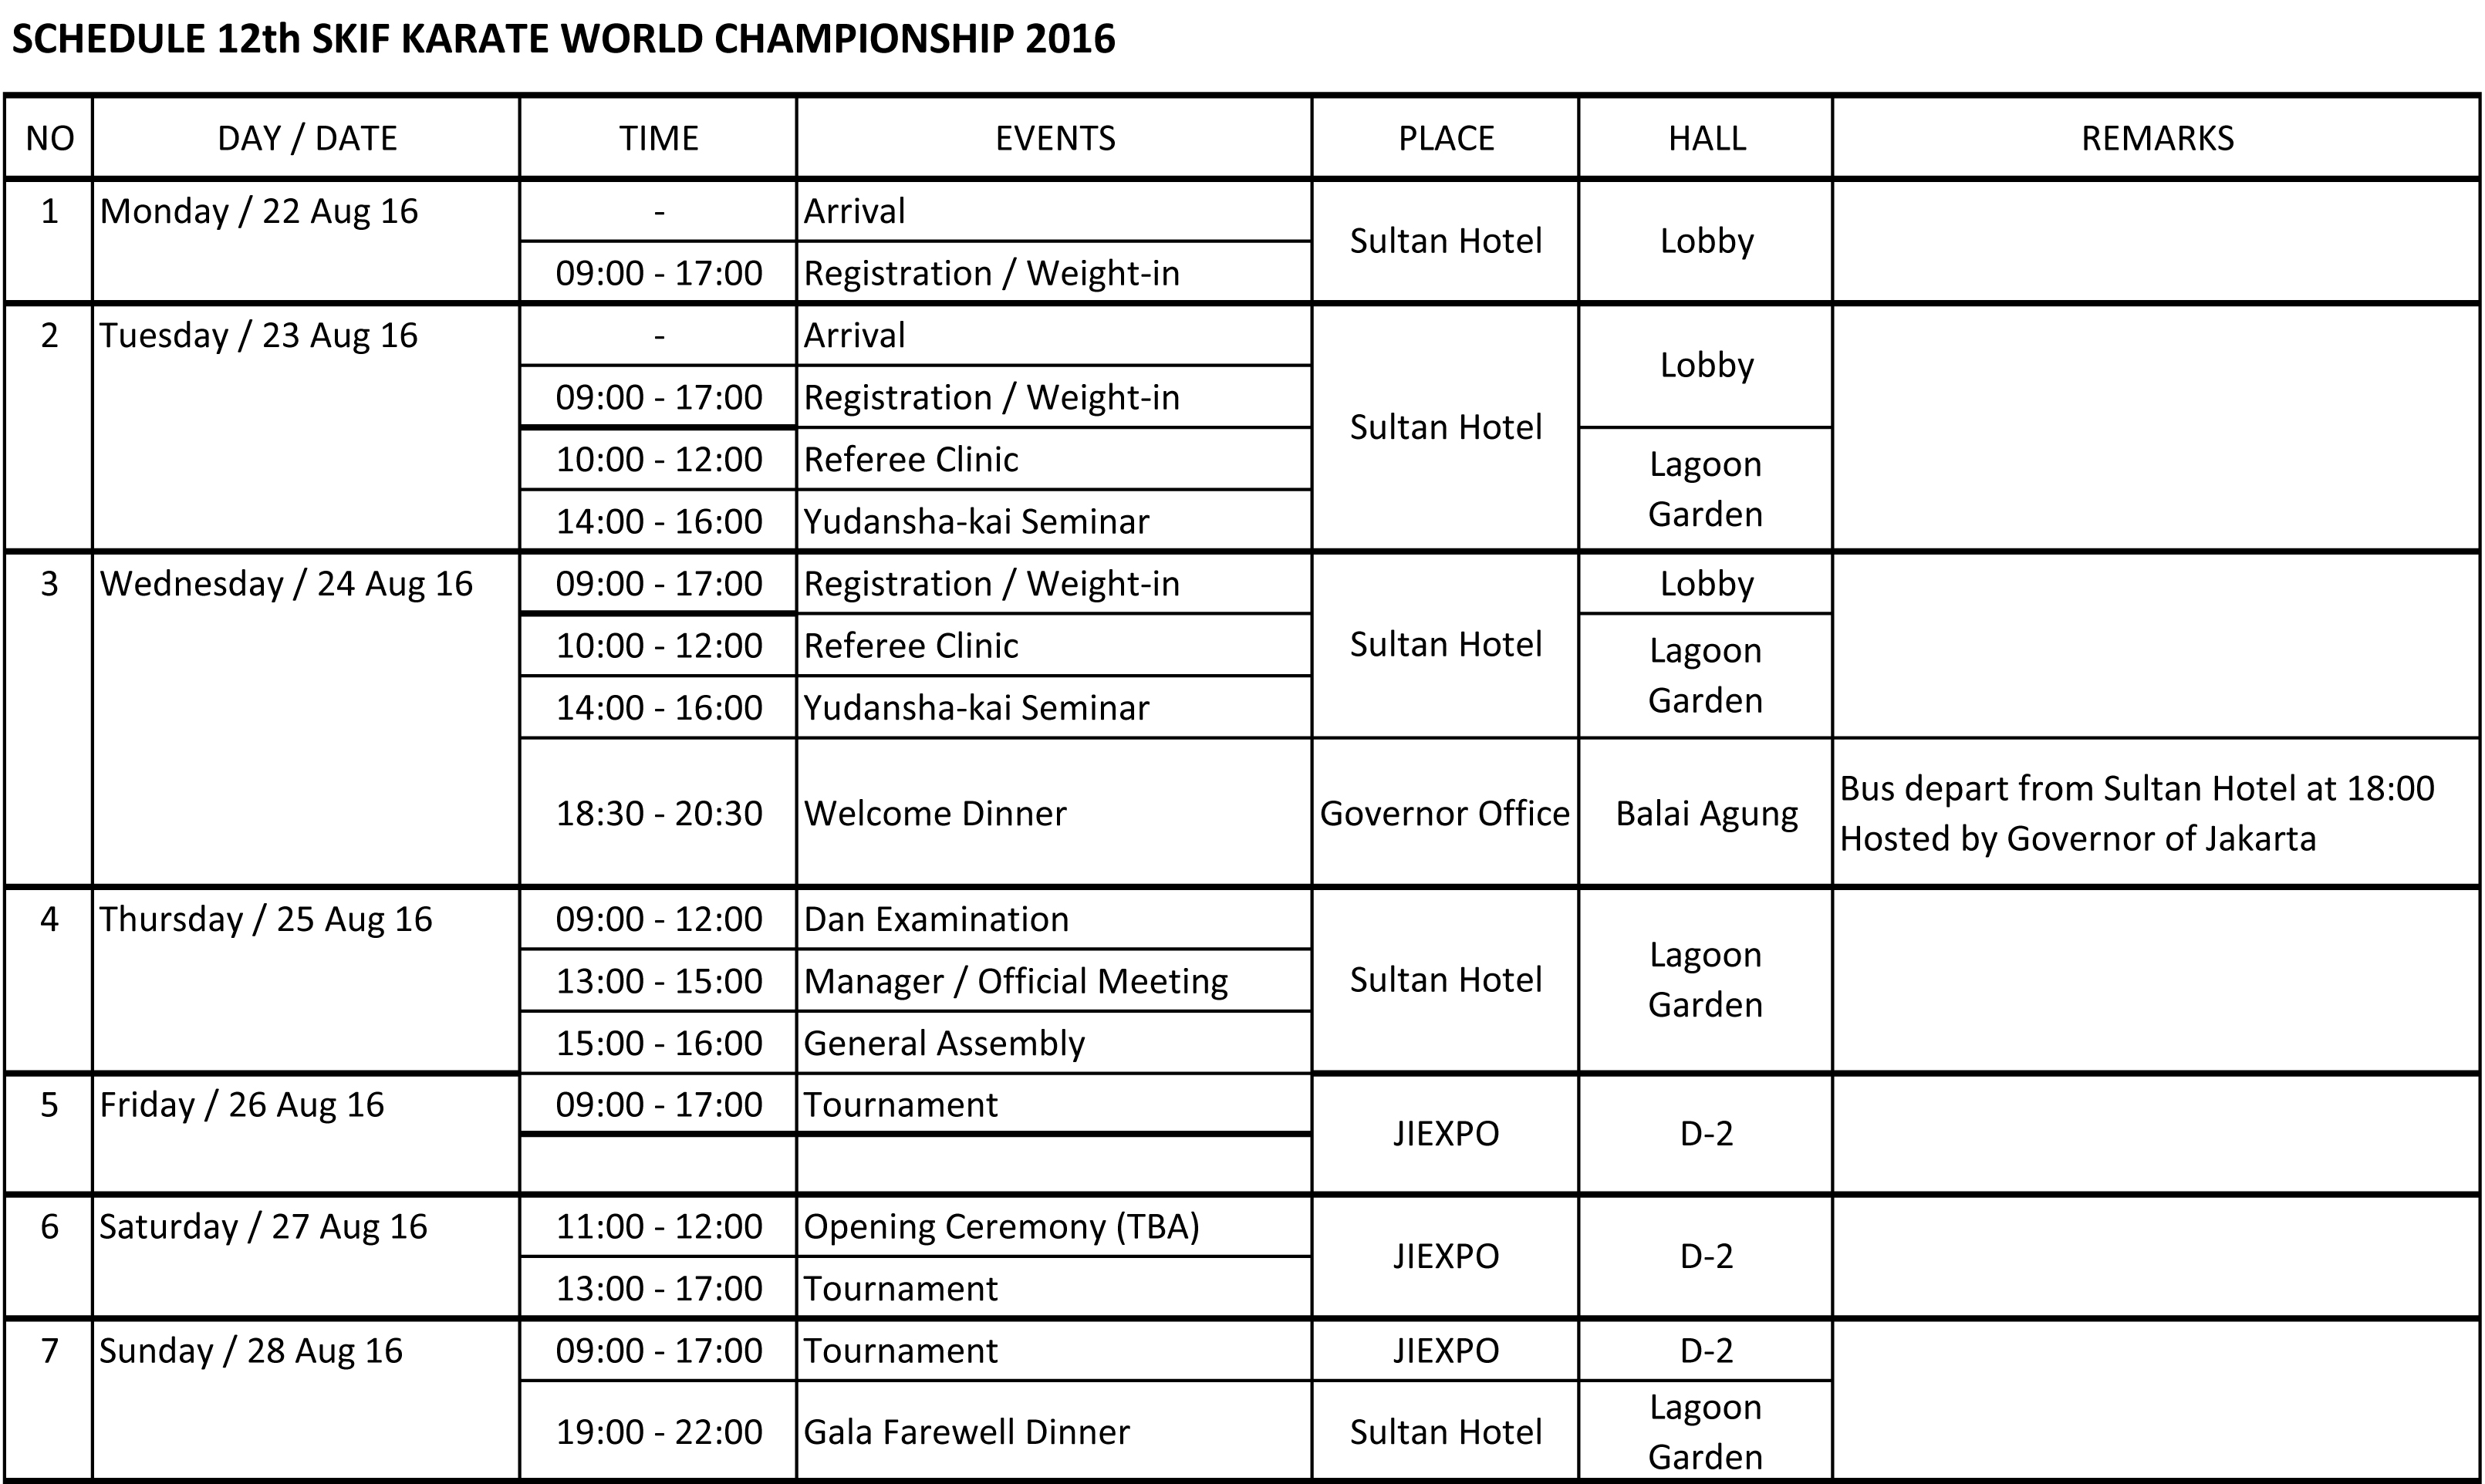 Schedule 12th SKIF WC 2016